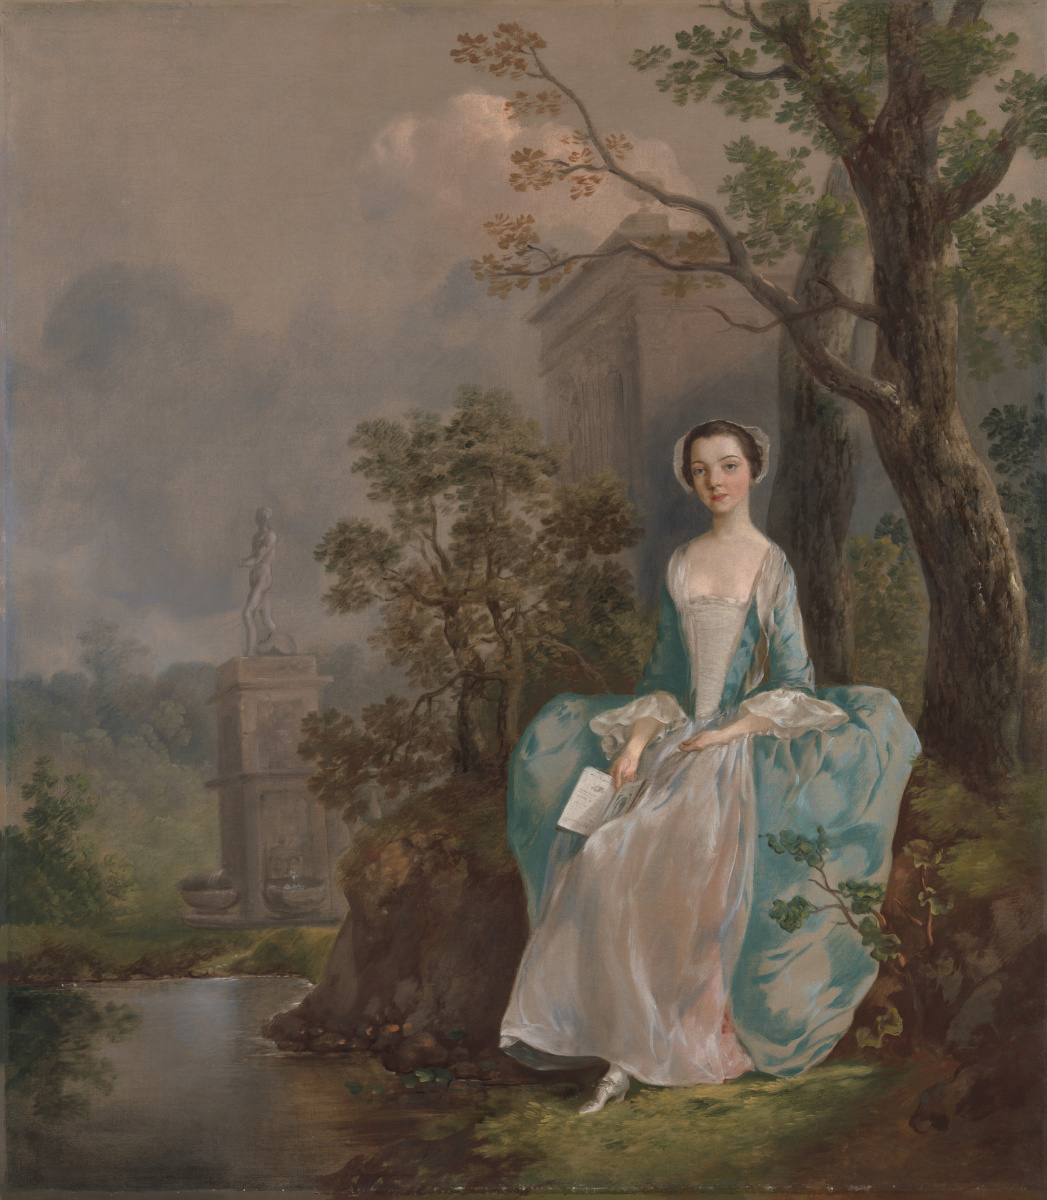 Thomas Gainsborough. A girl with a book seated in a Park